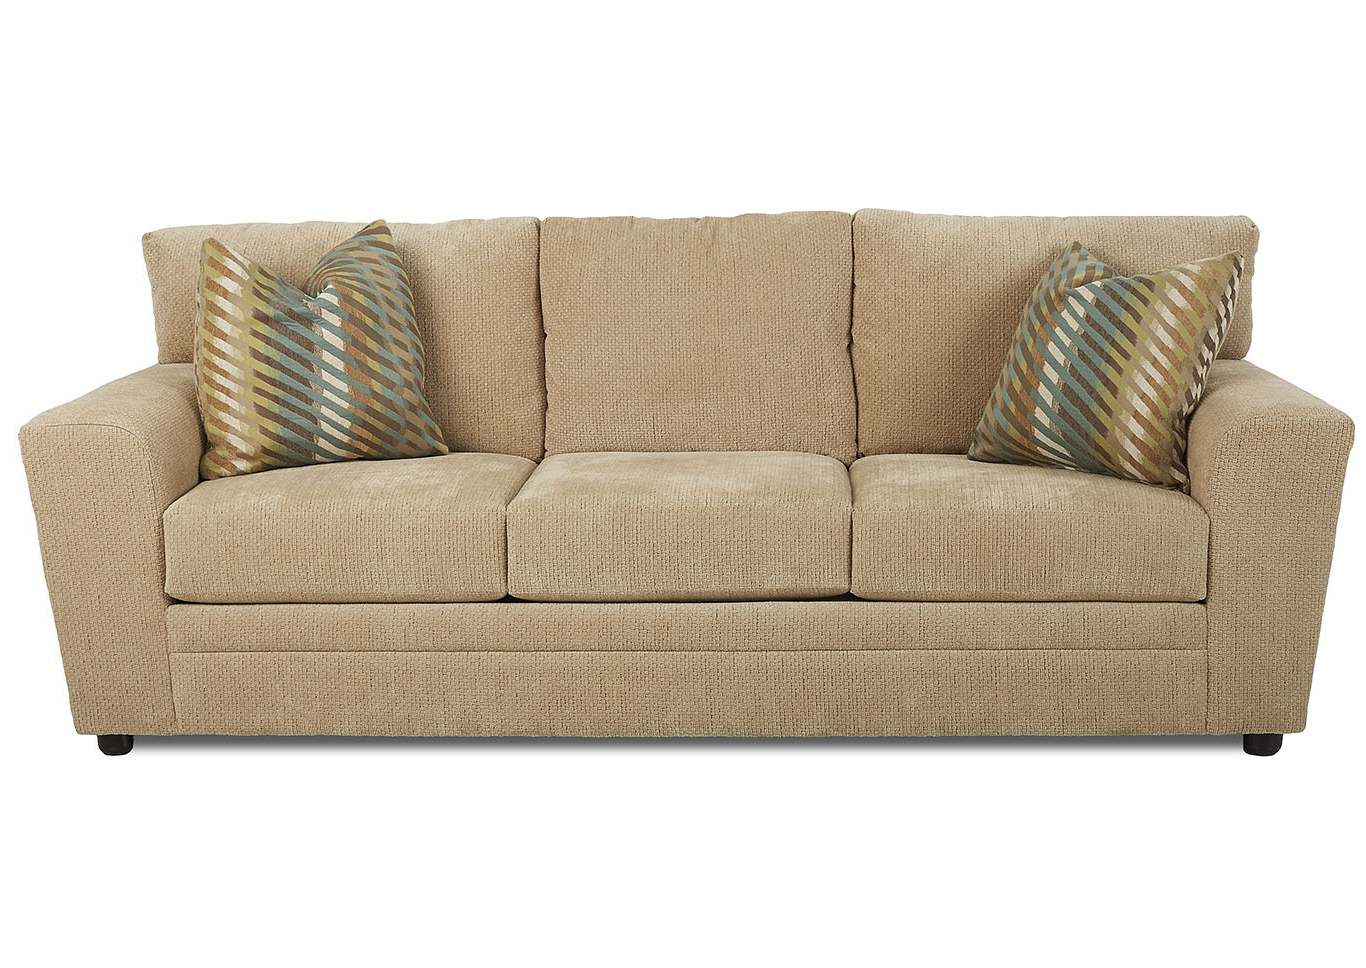 Amite City Furniture – Amite, La Ashburn Fabric Sleeper Sofa Pertaining To Trendy Ashburn Cocktail Tables (Gallery 8 of 20)